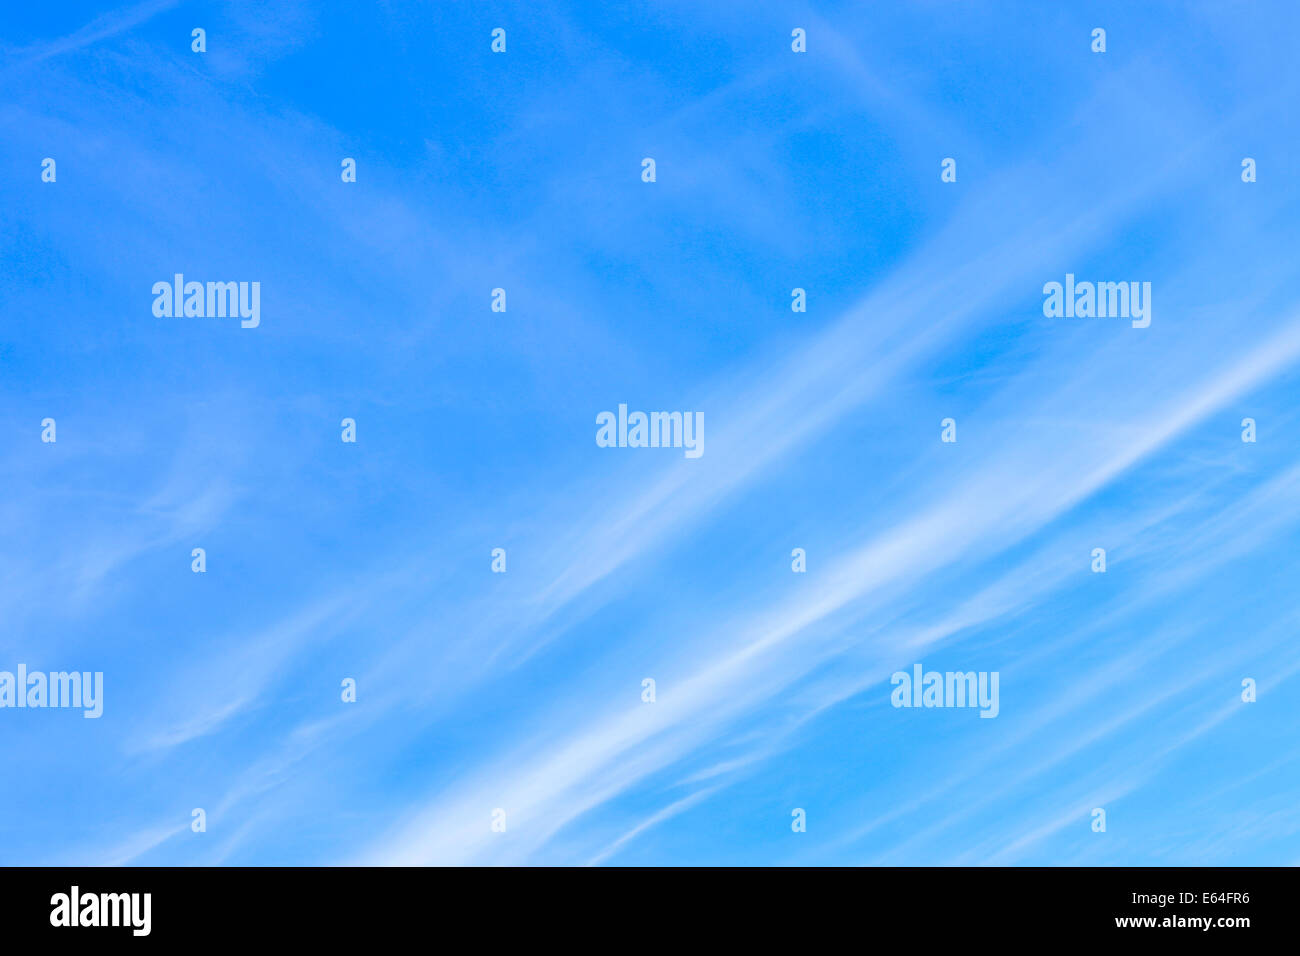 Fleecy clouds, may be used as background - Stock Image